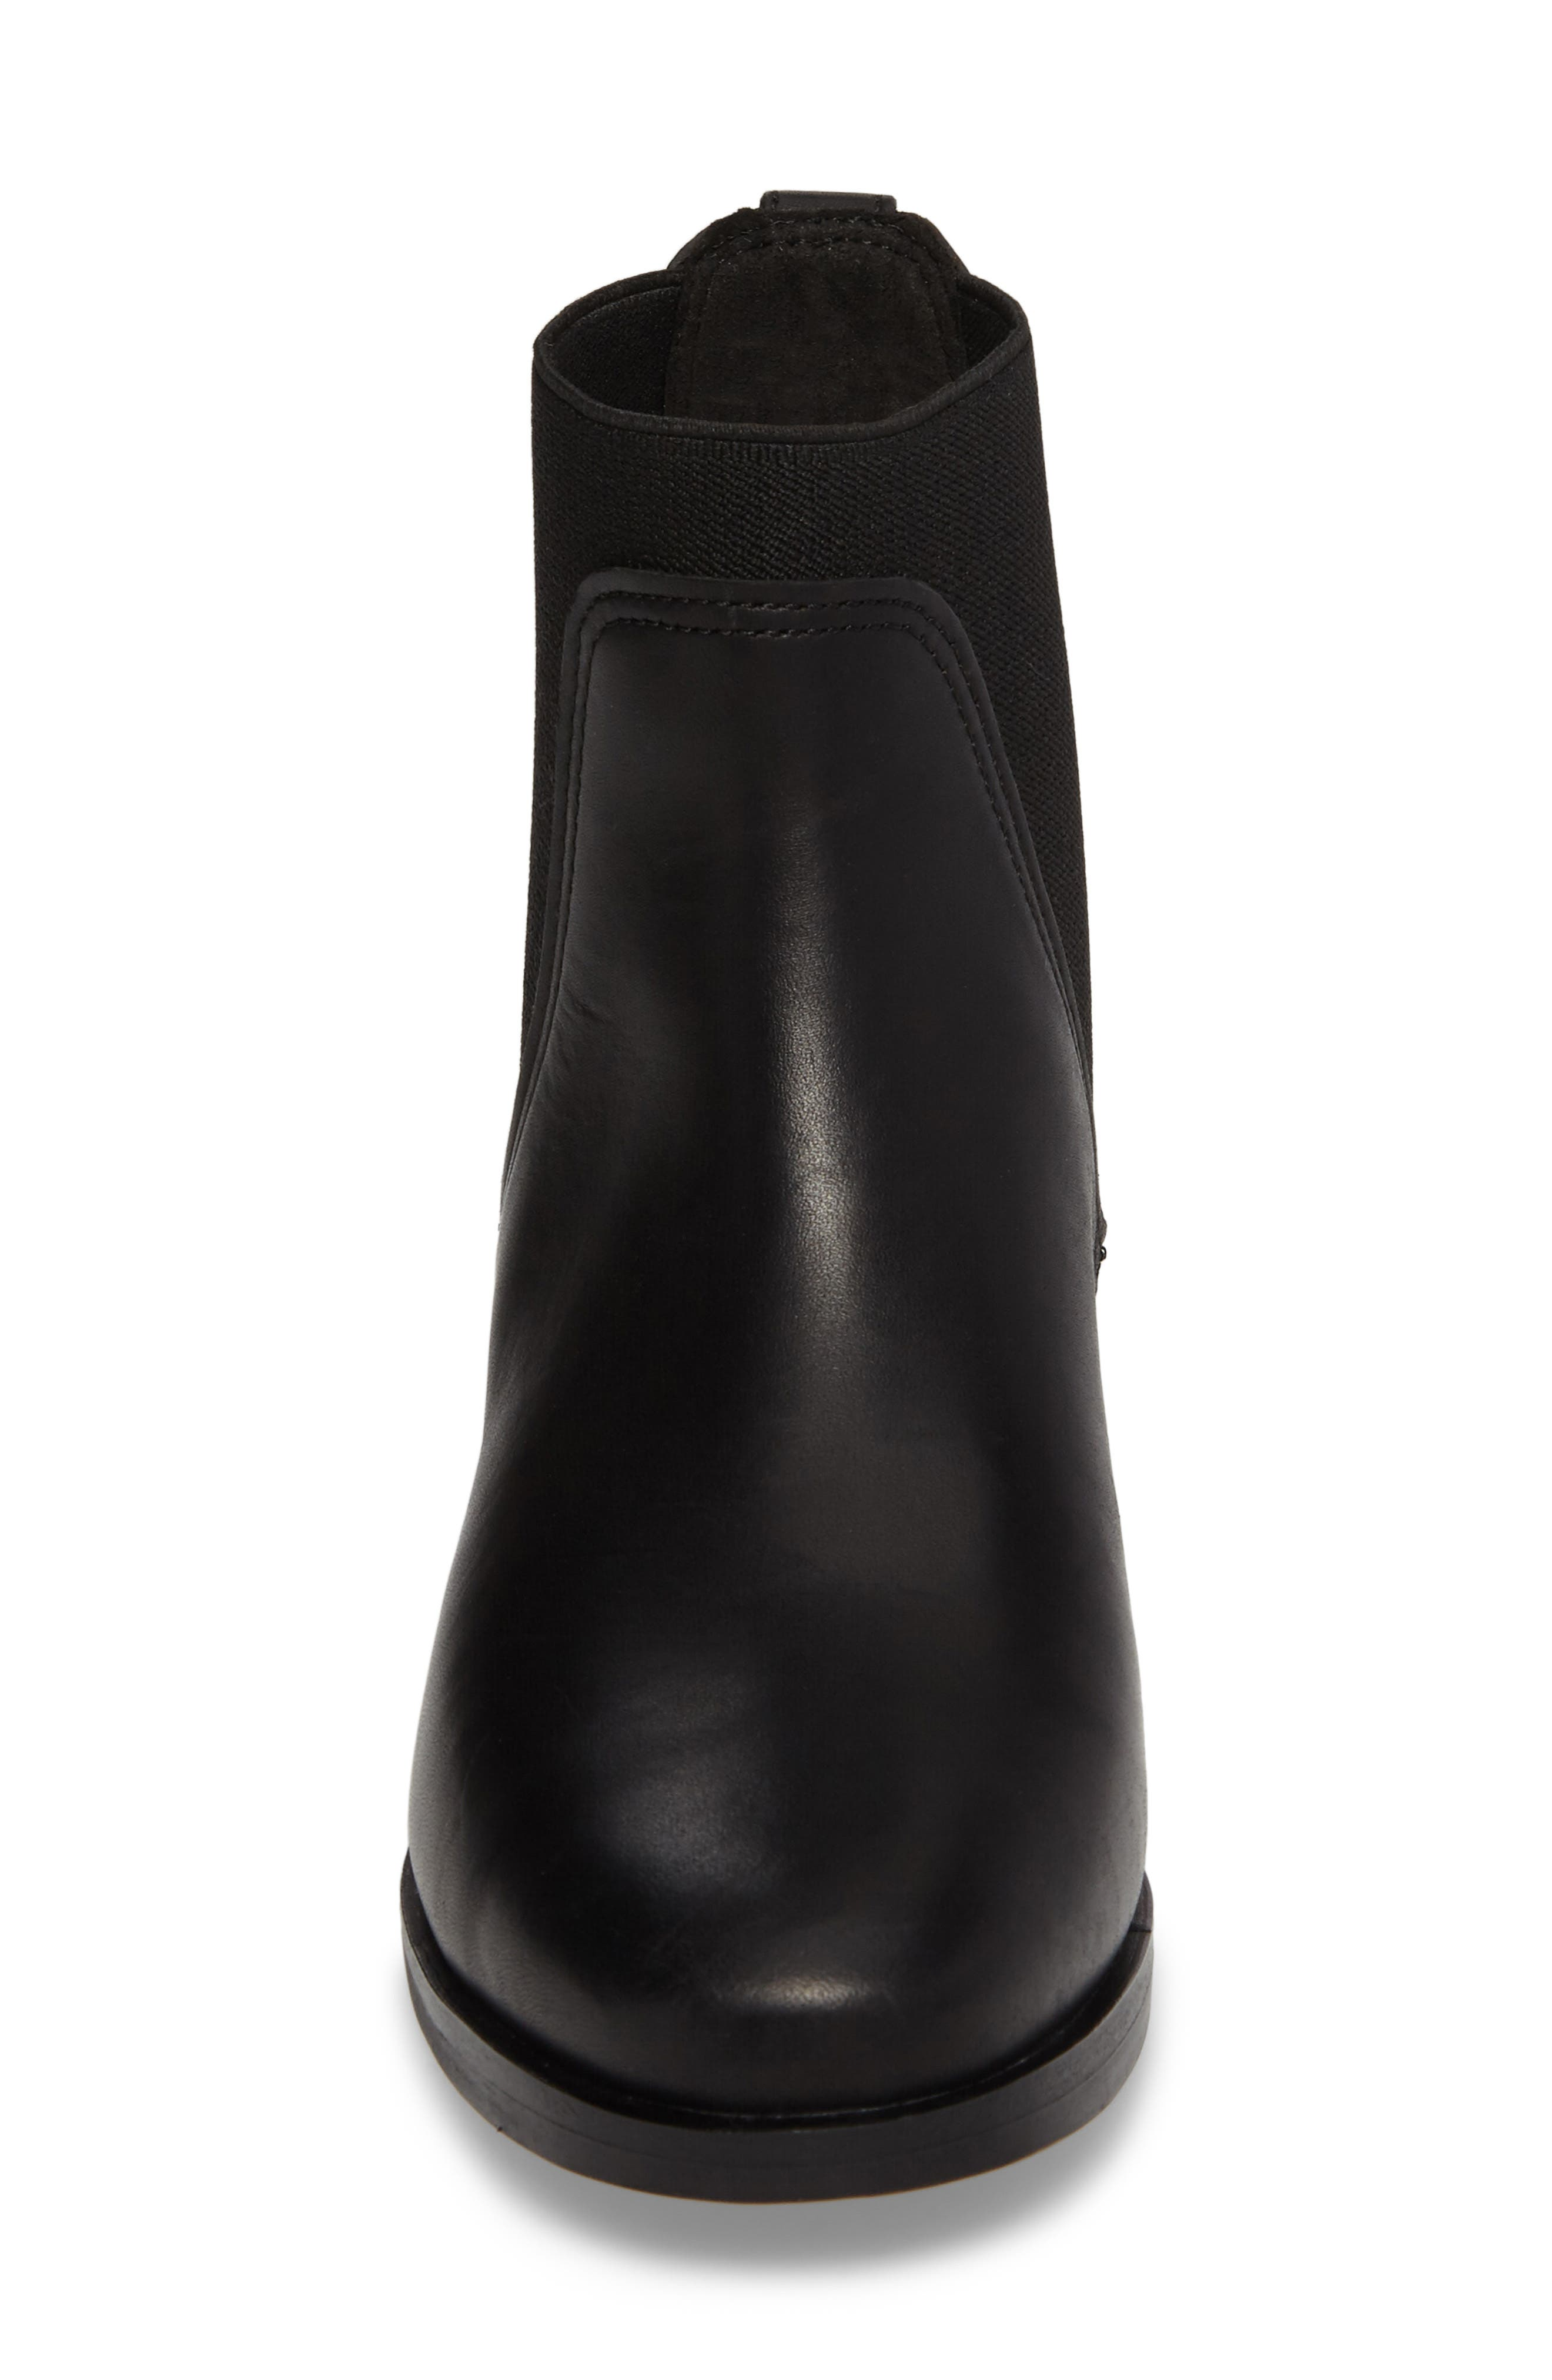 Somers Falls Water Resistant Chelsea Boot,                             Alternate thumbnail 5, color,                             Jet Black Swank Leather